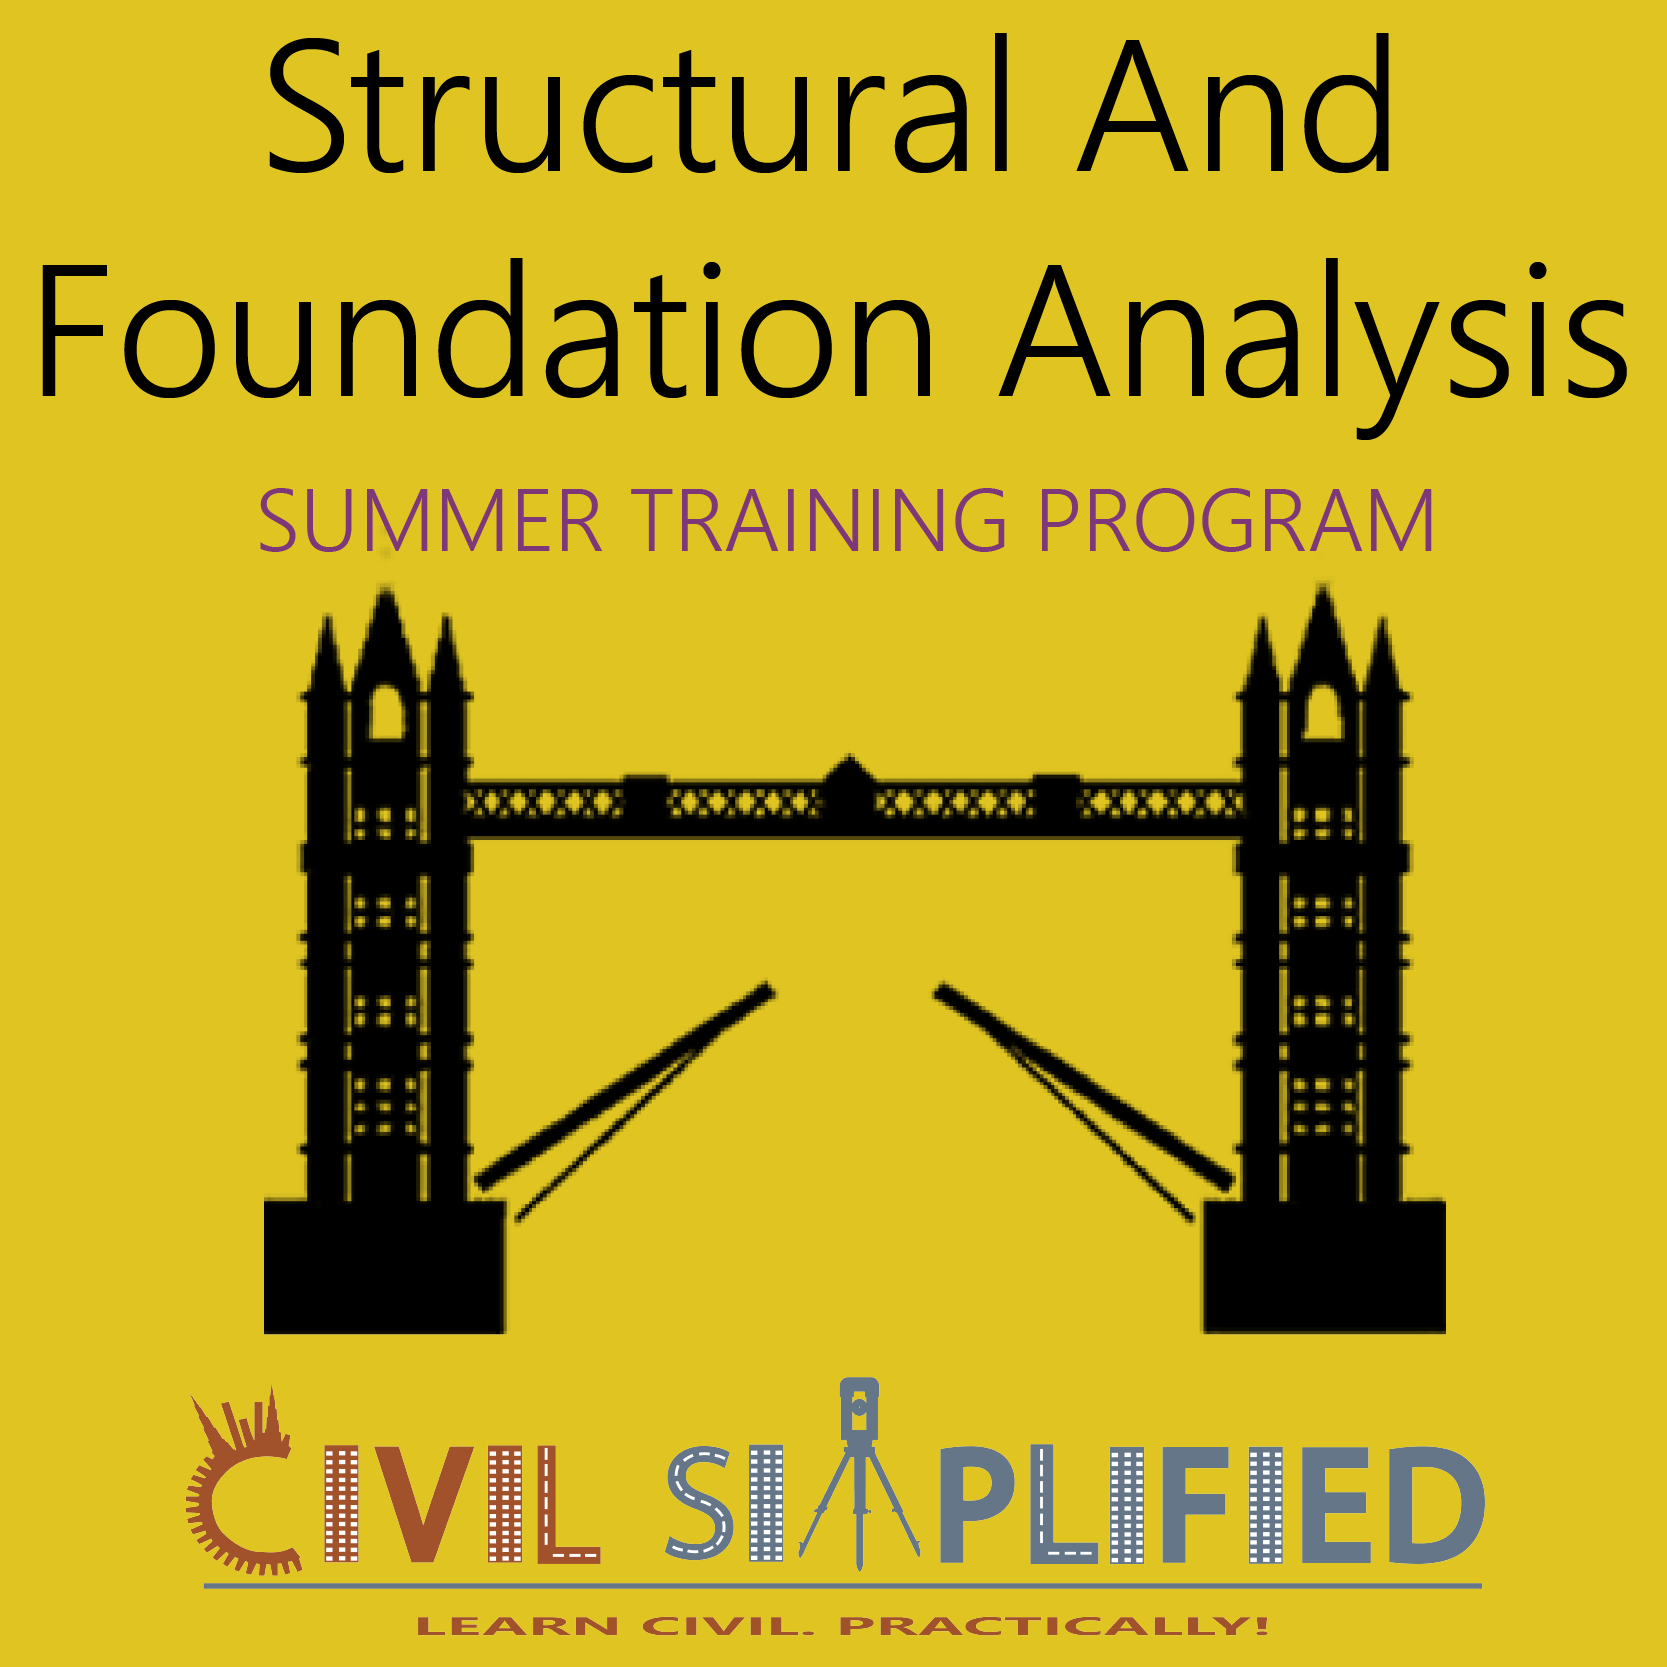 Summer Training Program in Civil Engineering - Structural and Foundation Analysis  at Skyfi Labs Center,Jejurkar Classes, Dadar Workshop